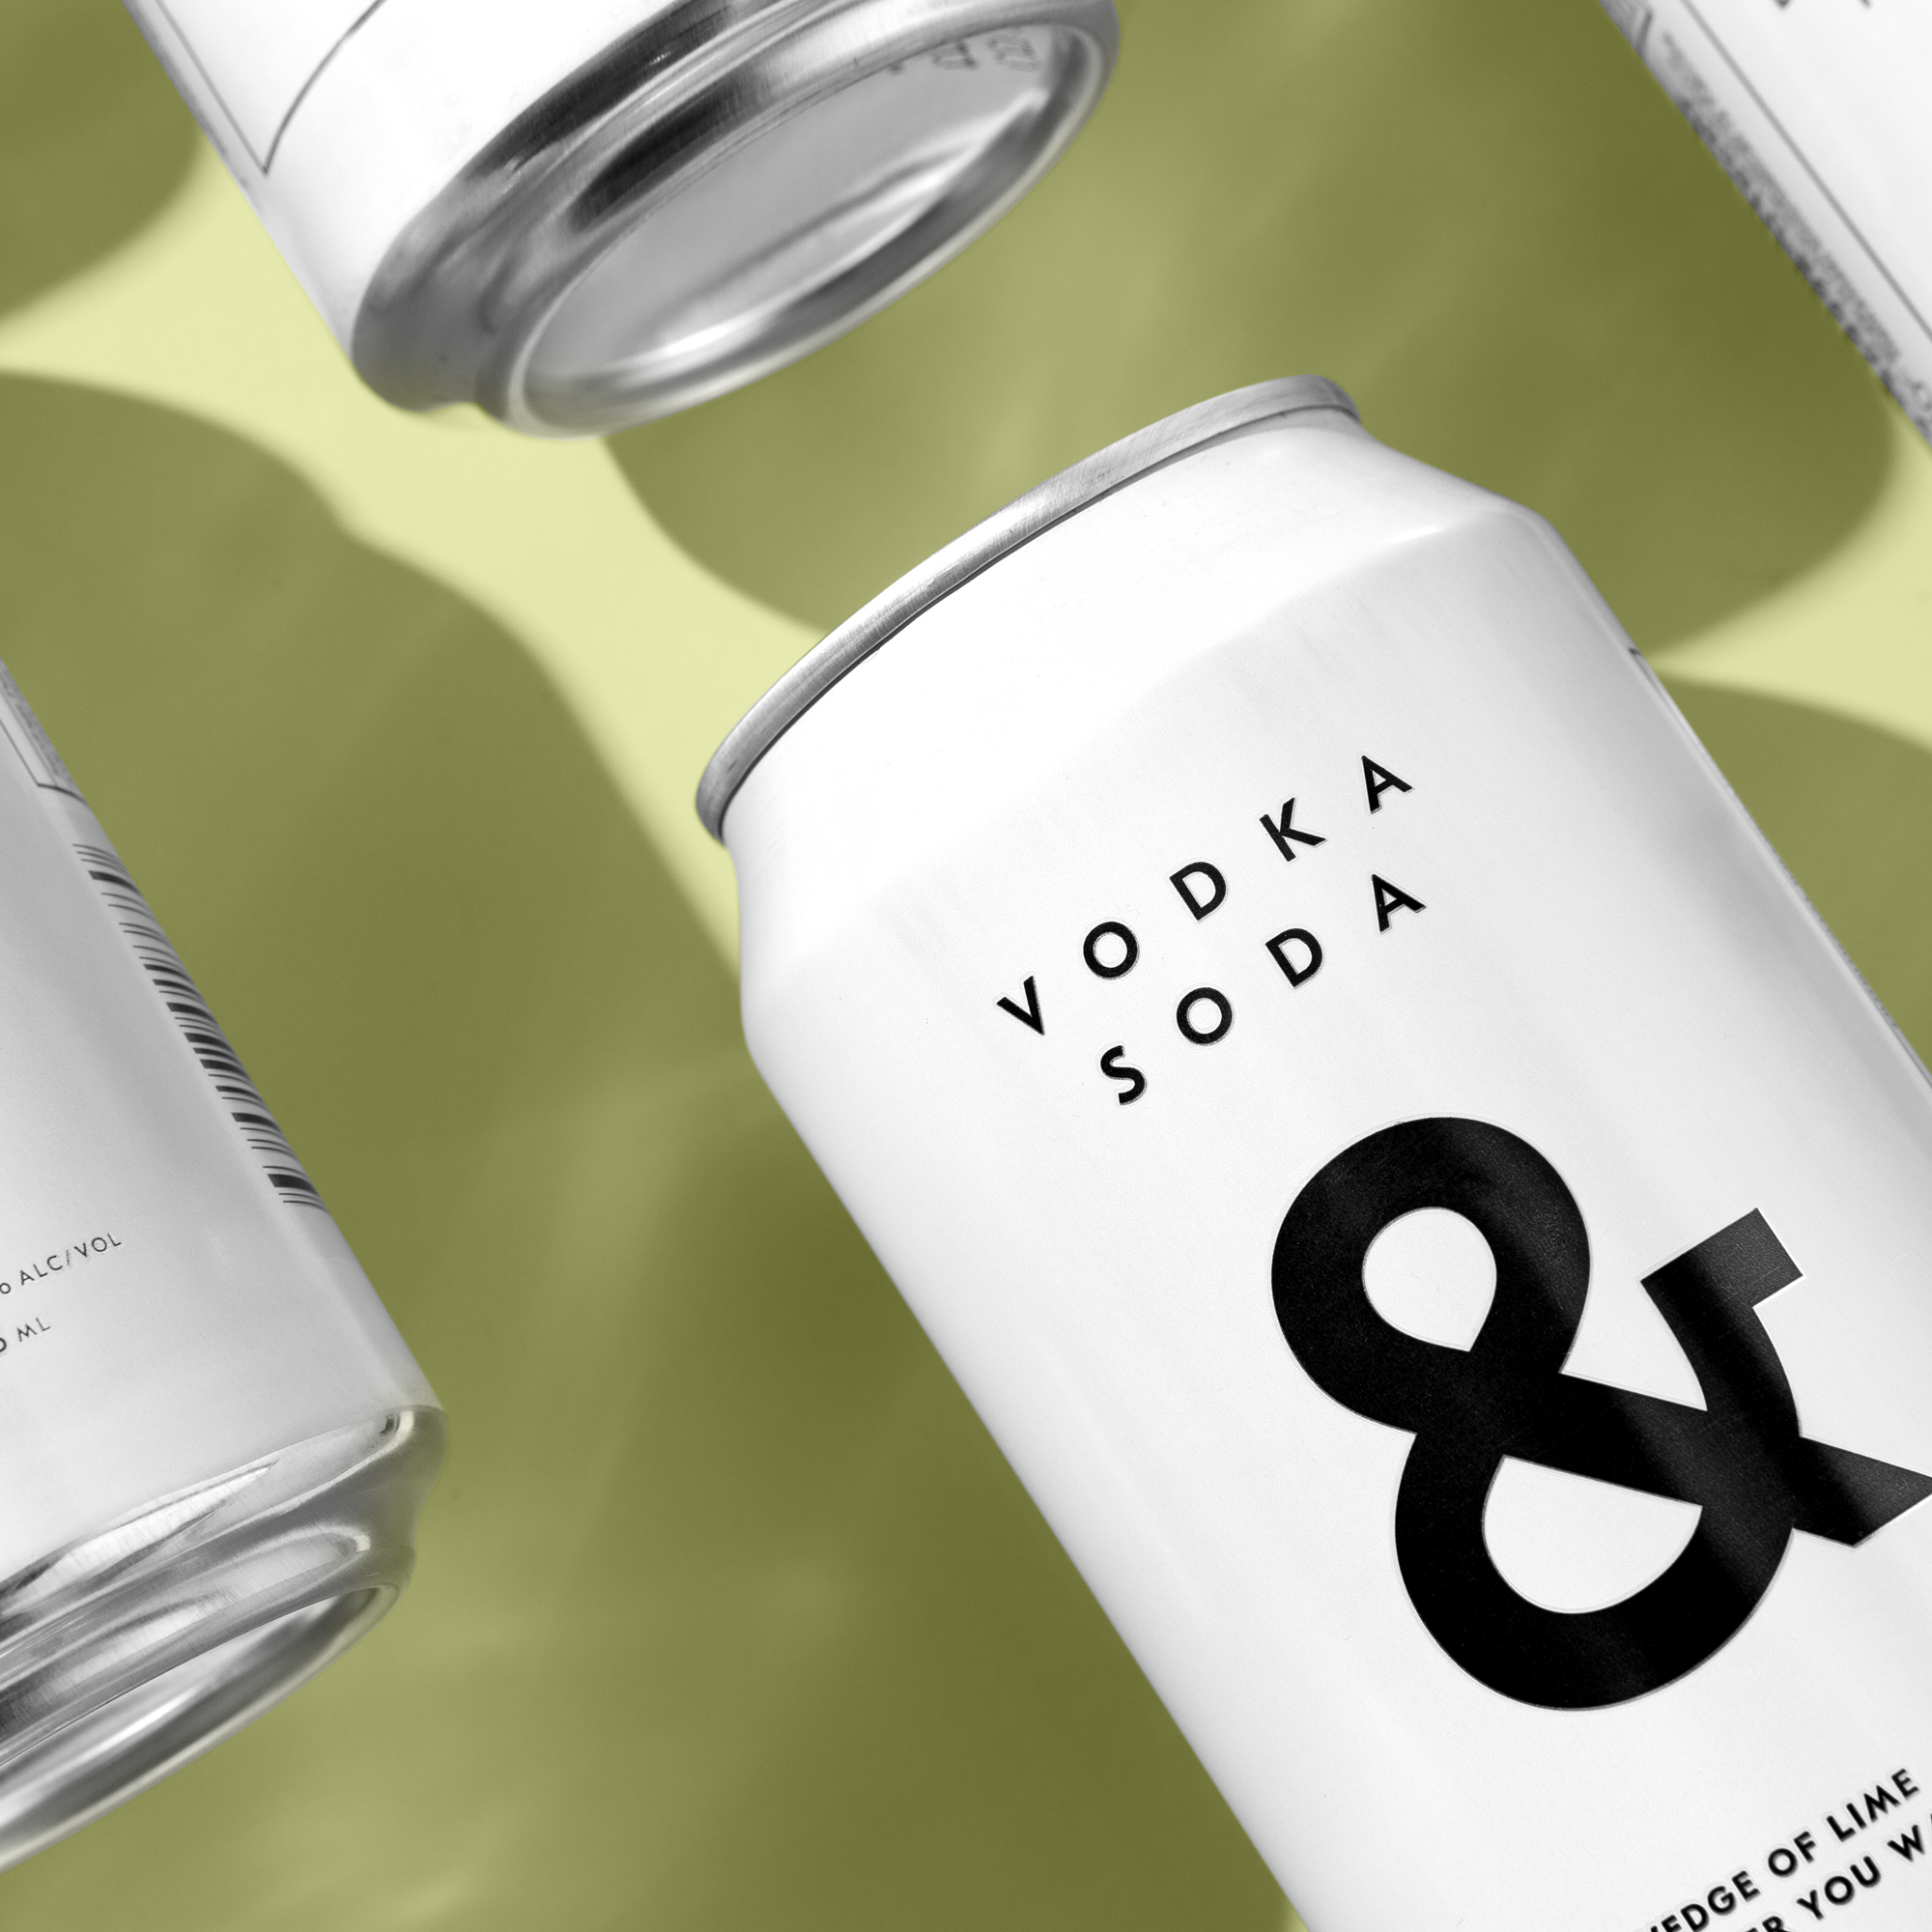 Brand Identity and Packaging for Vodka Soda & - Branding & Positioning